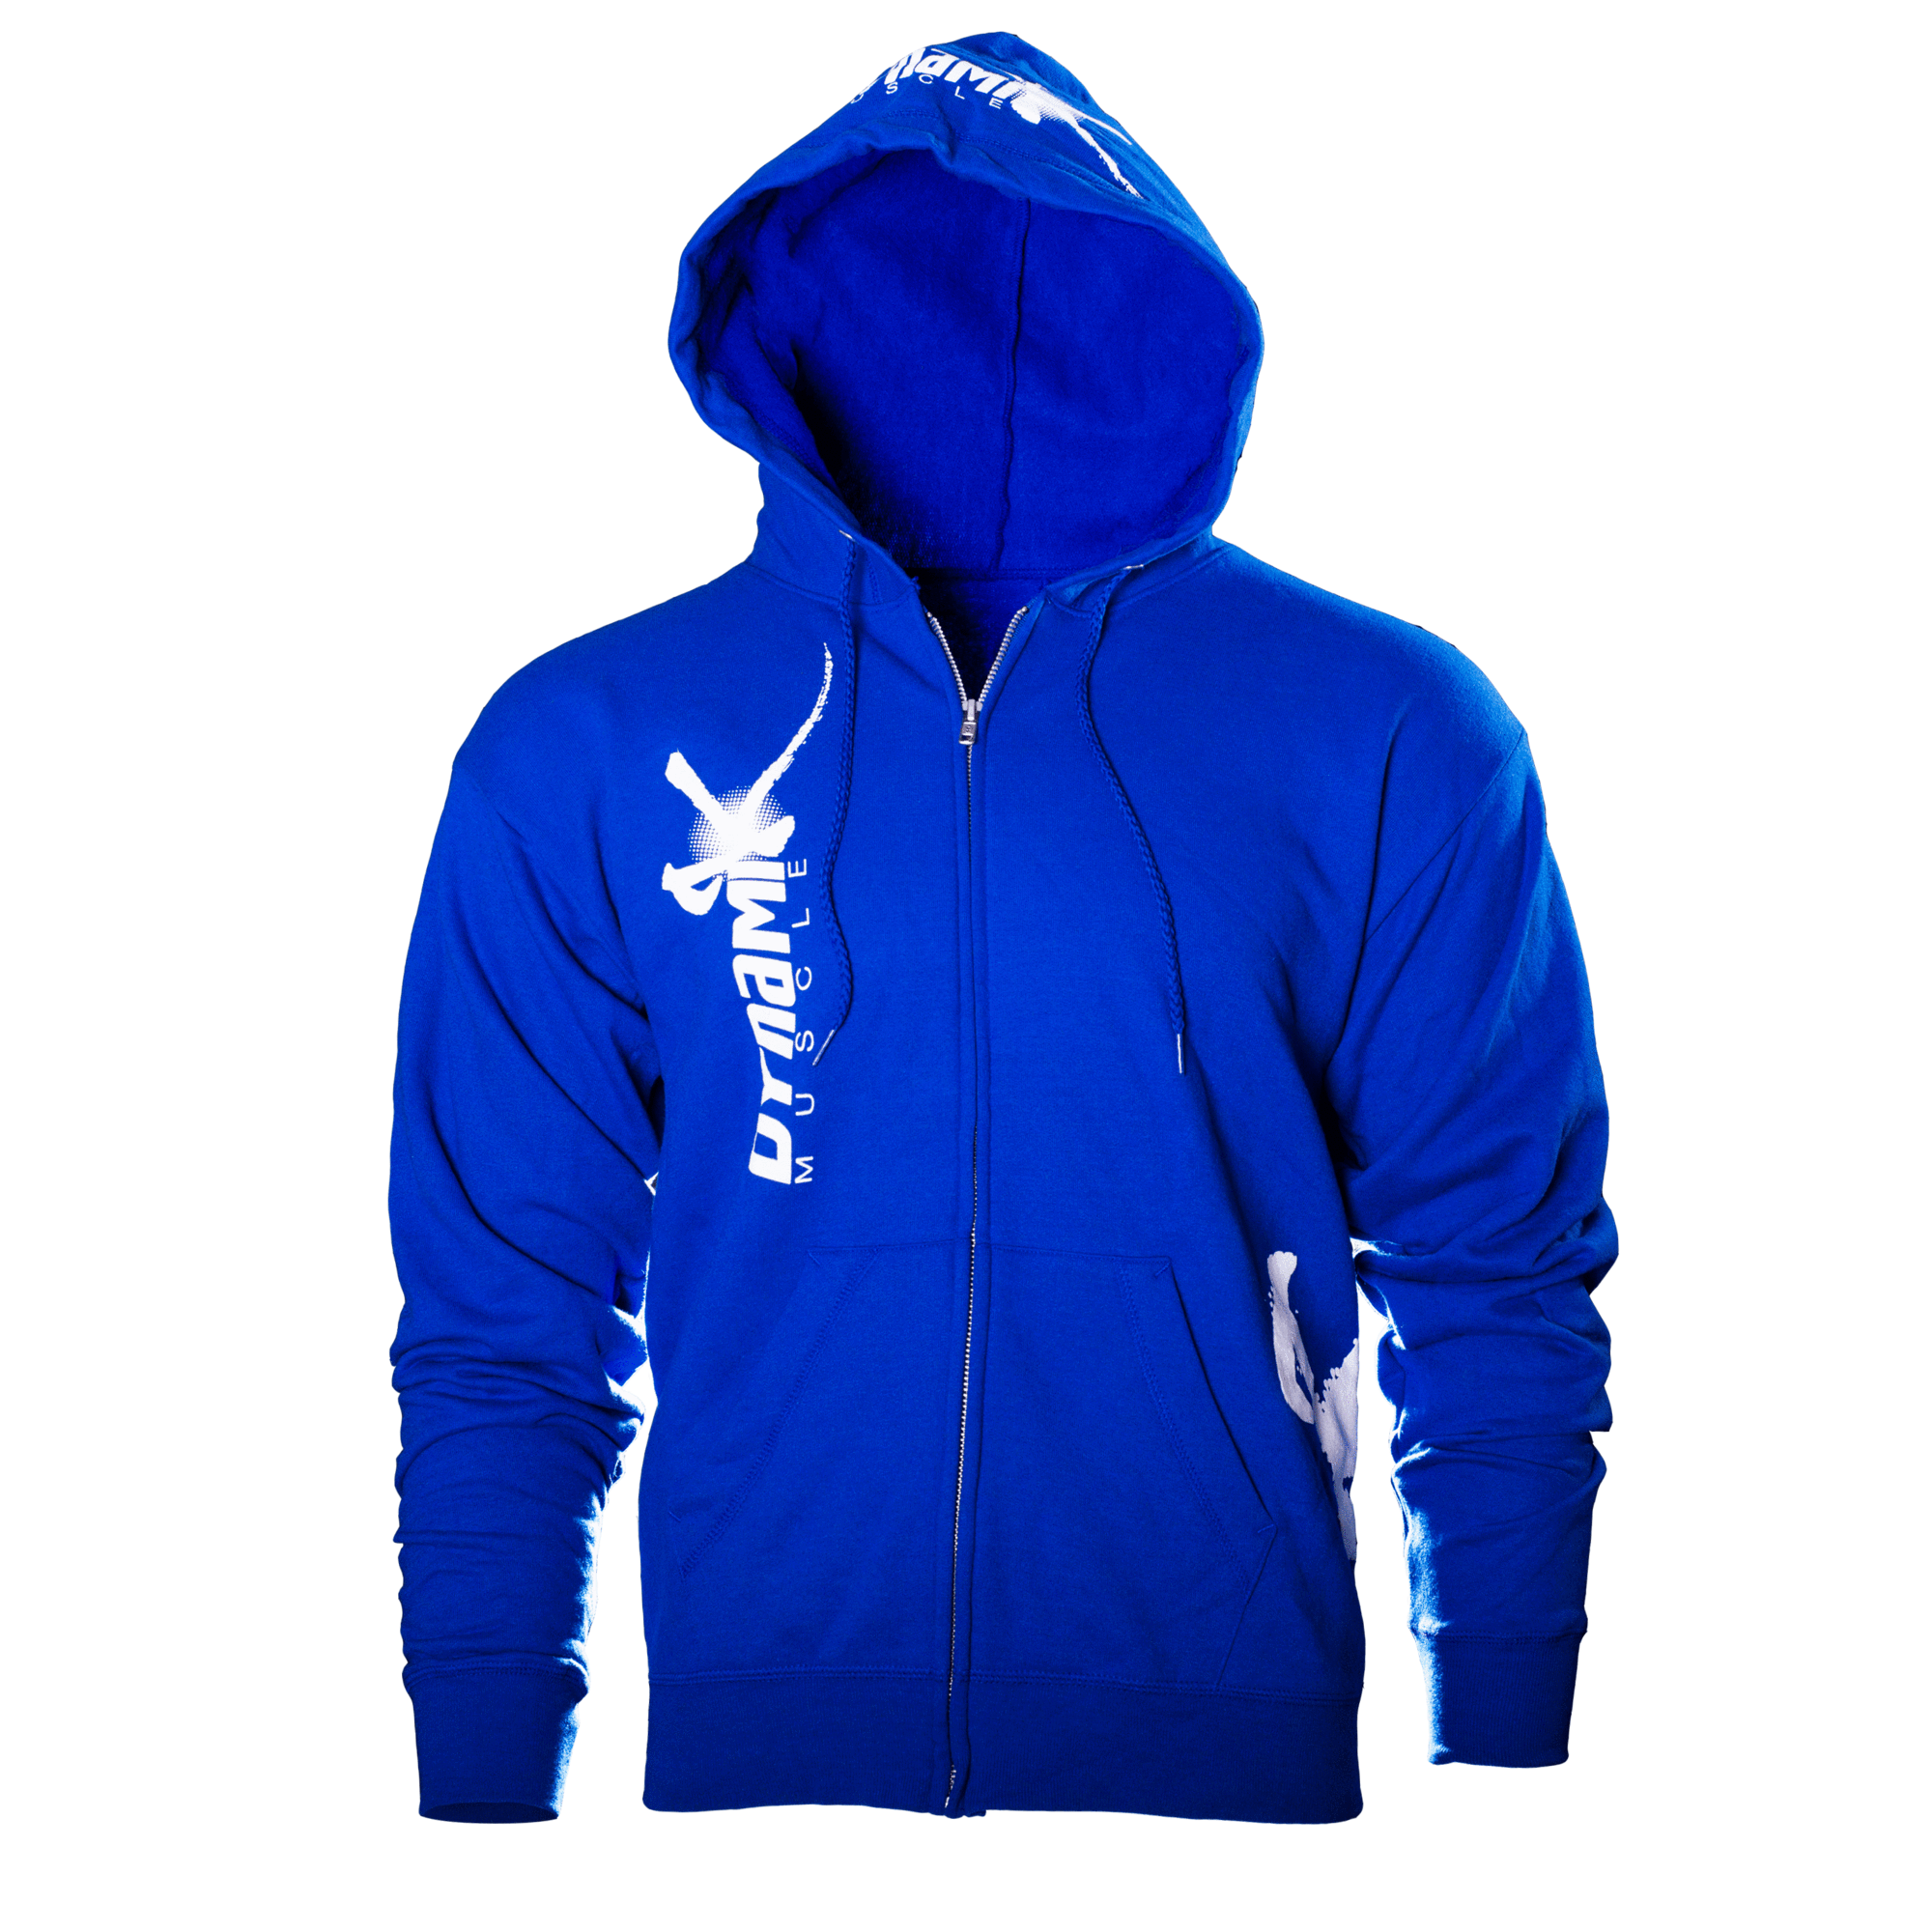 Transparent muscles jacket png. Dynamik muscle hoodie heavy